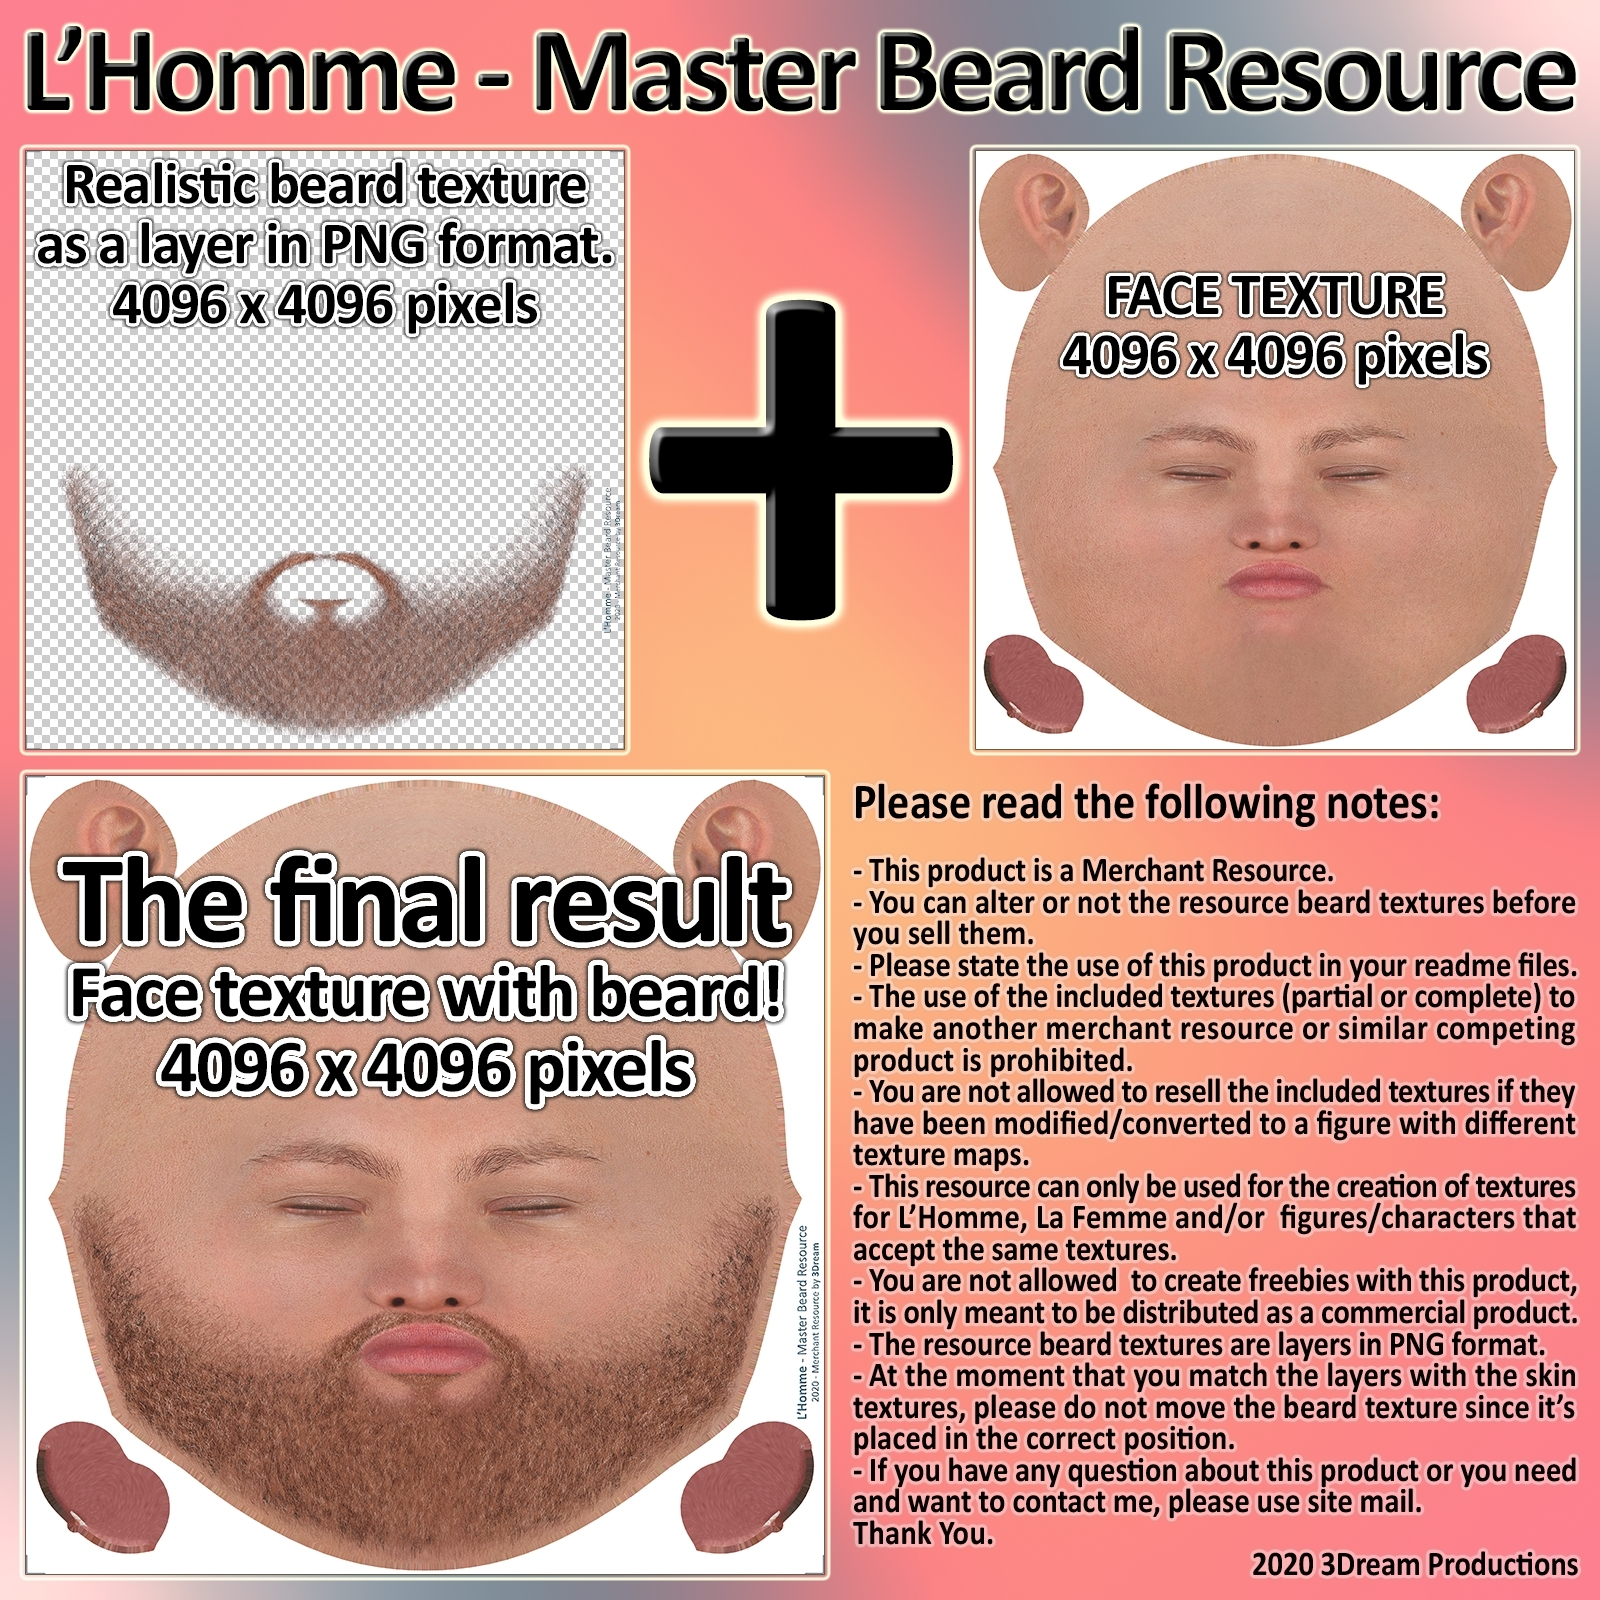 L'Homme - Master Beard Resource